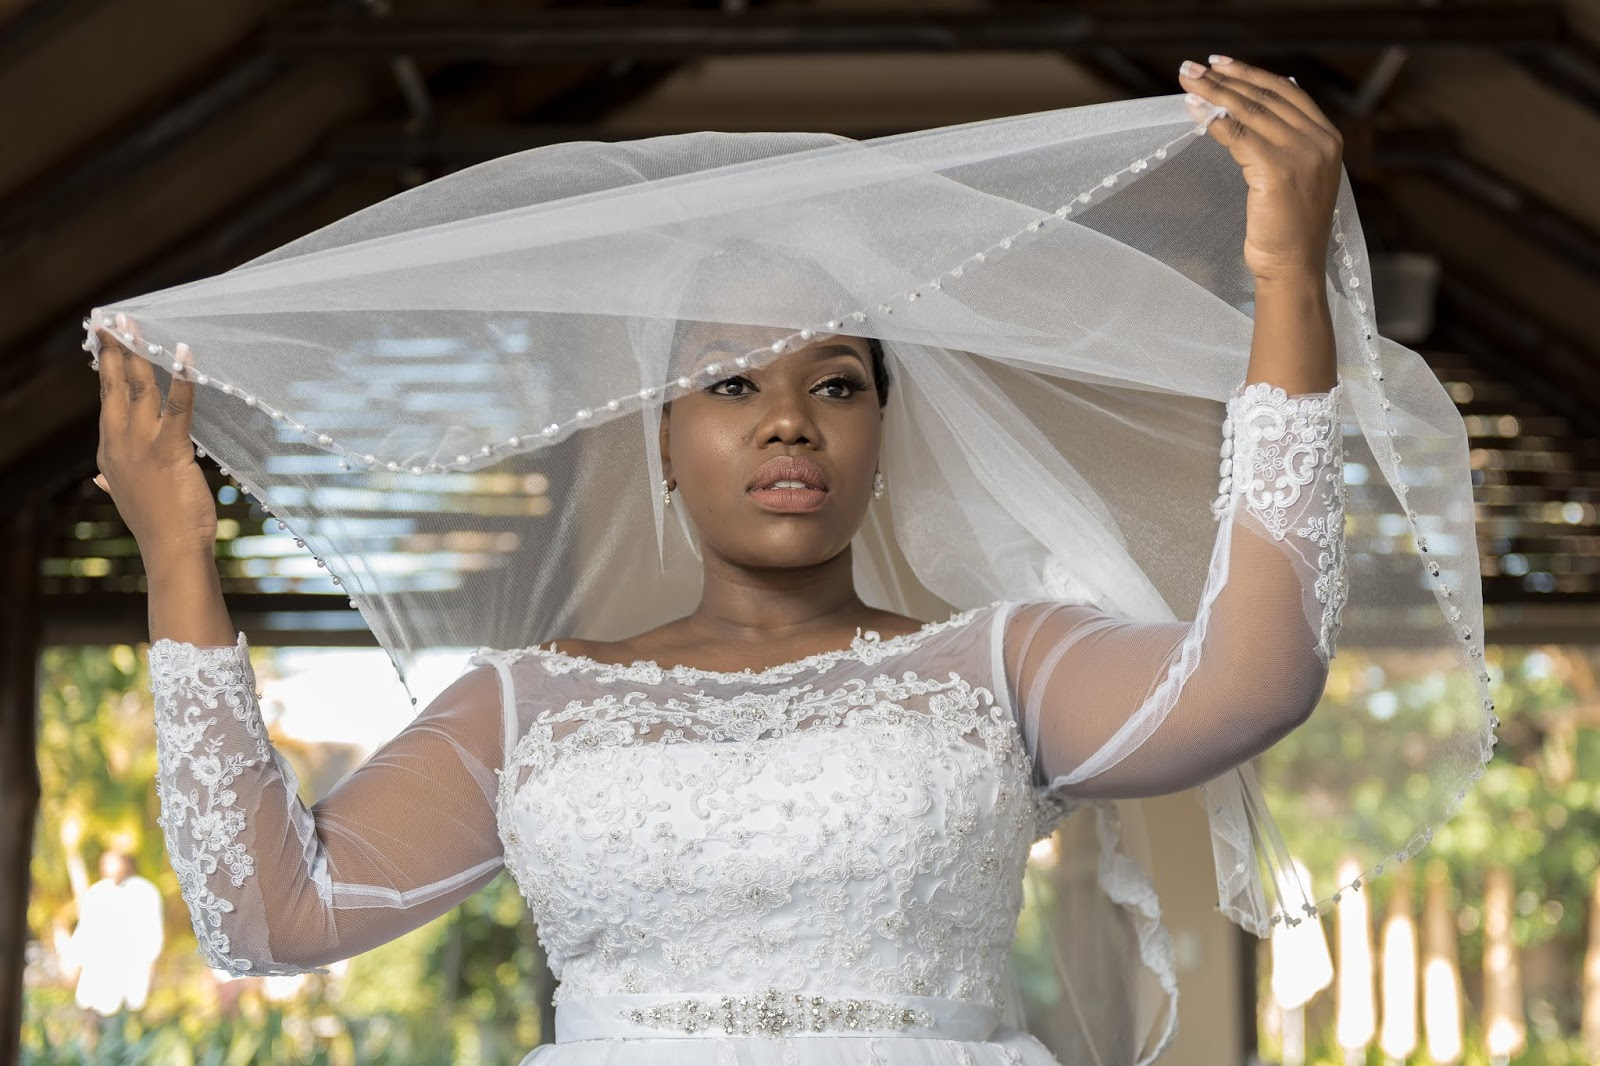 81208b15c9a04 The wedding day drama will play out over two consecutive nights as Nkunzi  gets ready to marry MaMlambo (Gugu Gumede) on Monday 24 September but  MaNgcobo ...